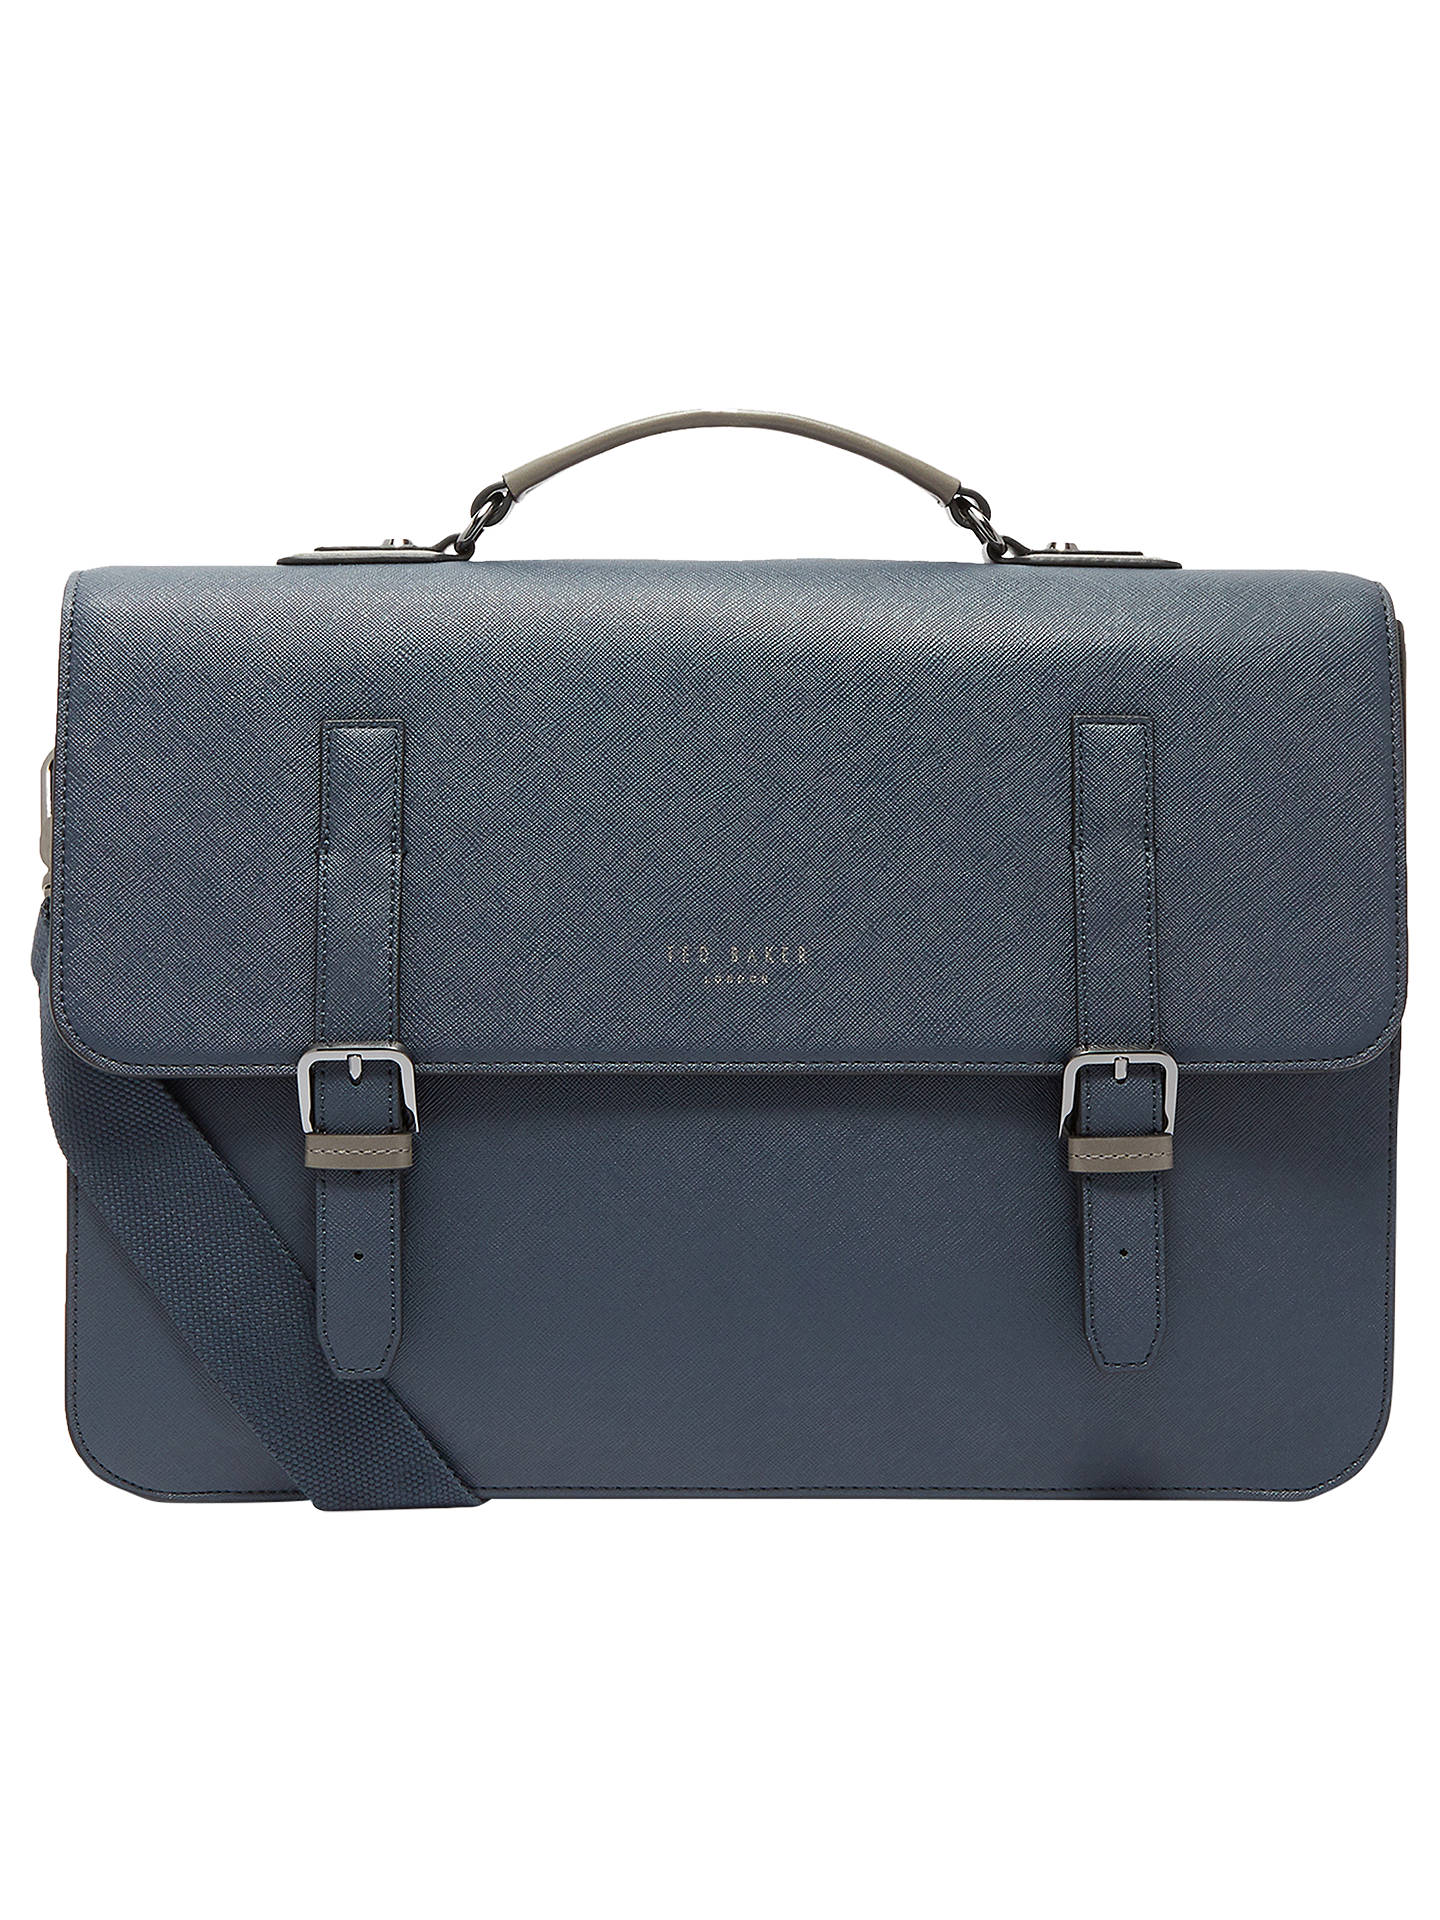 f3e4bb08e715d Buy Ted Baker Country Crossgrain Satchel